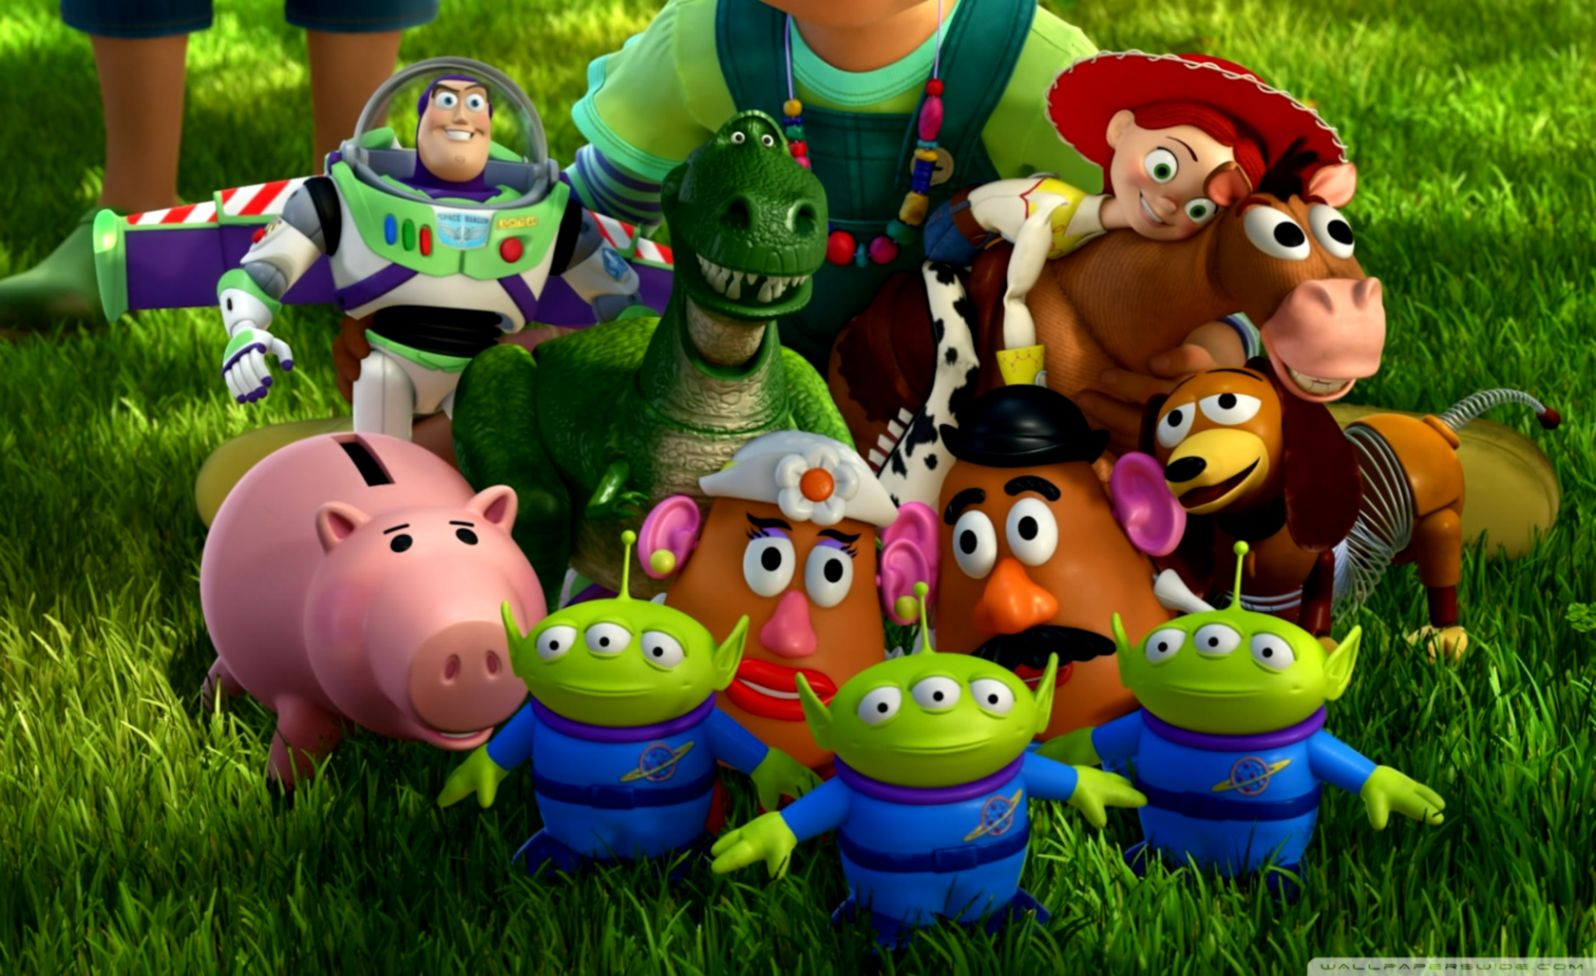 Toy Story Wallpaper Metro Wallpapers